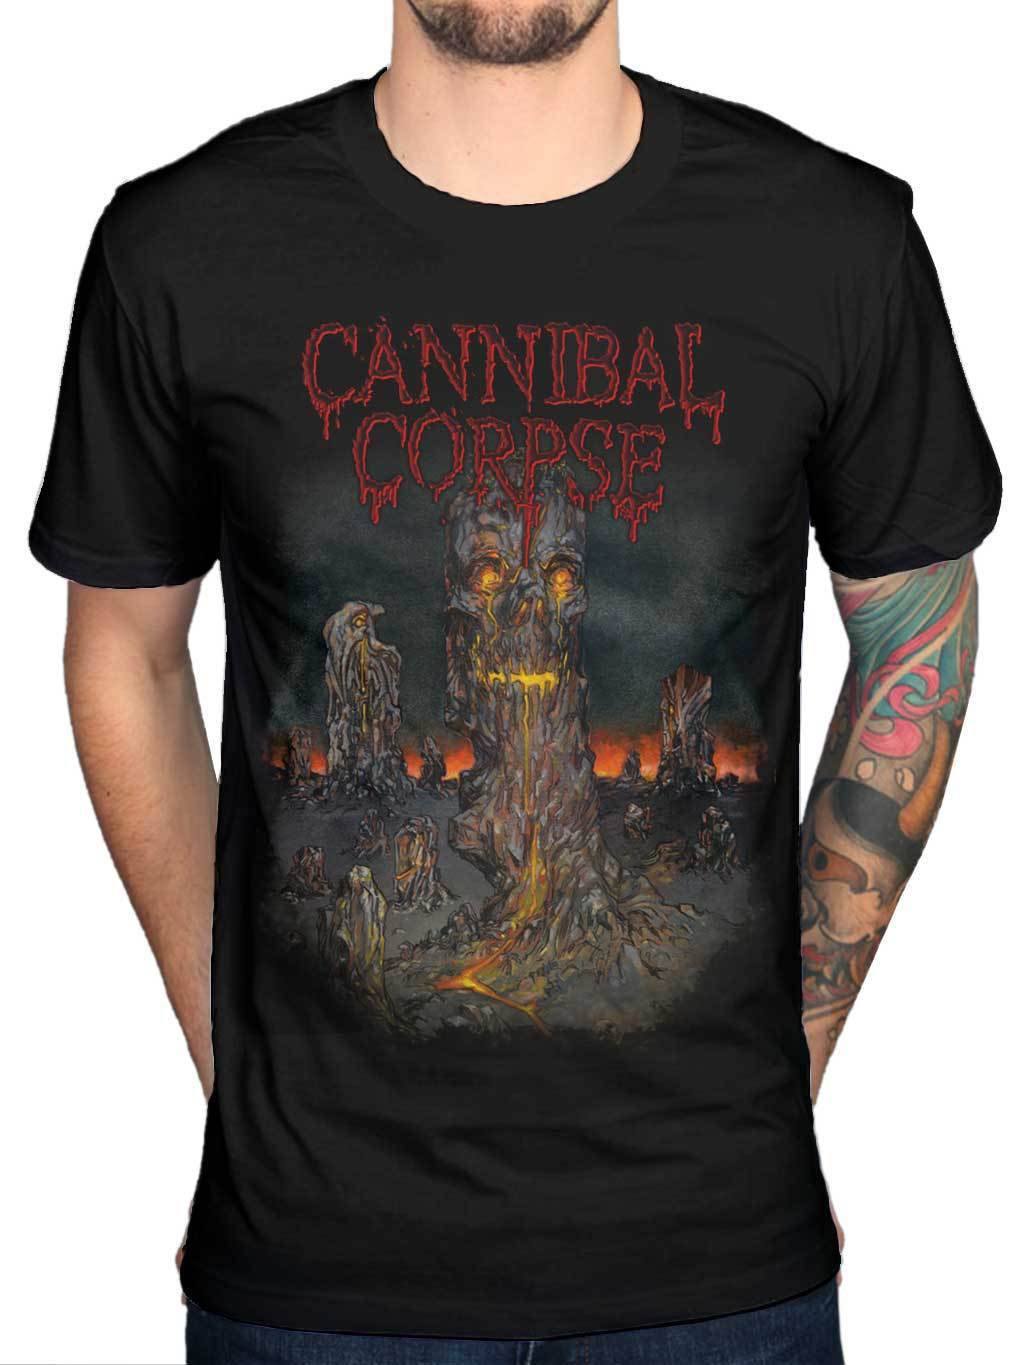 Official Cannibal Corpse Skeletal Domain 3 T Shirt Band Death Metal Bloodthirst